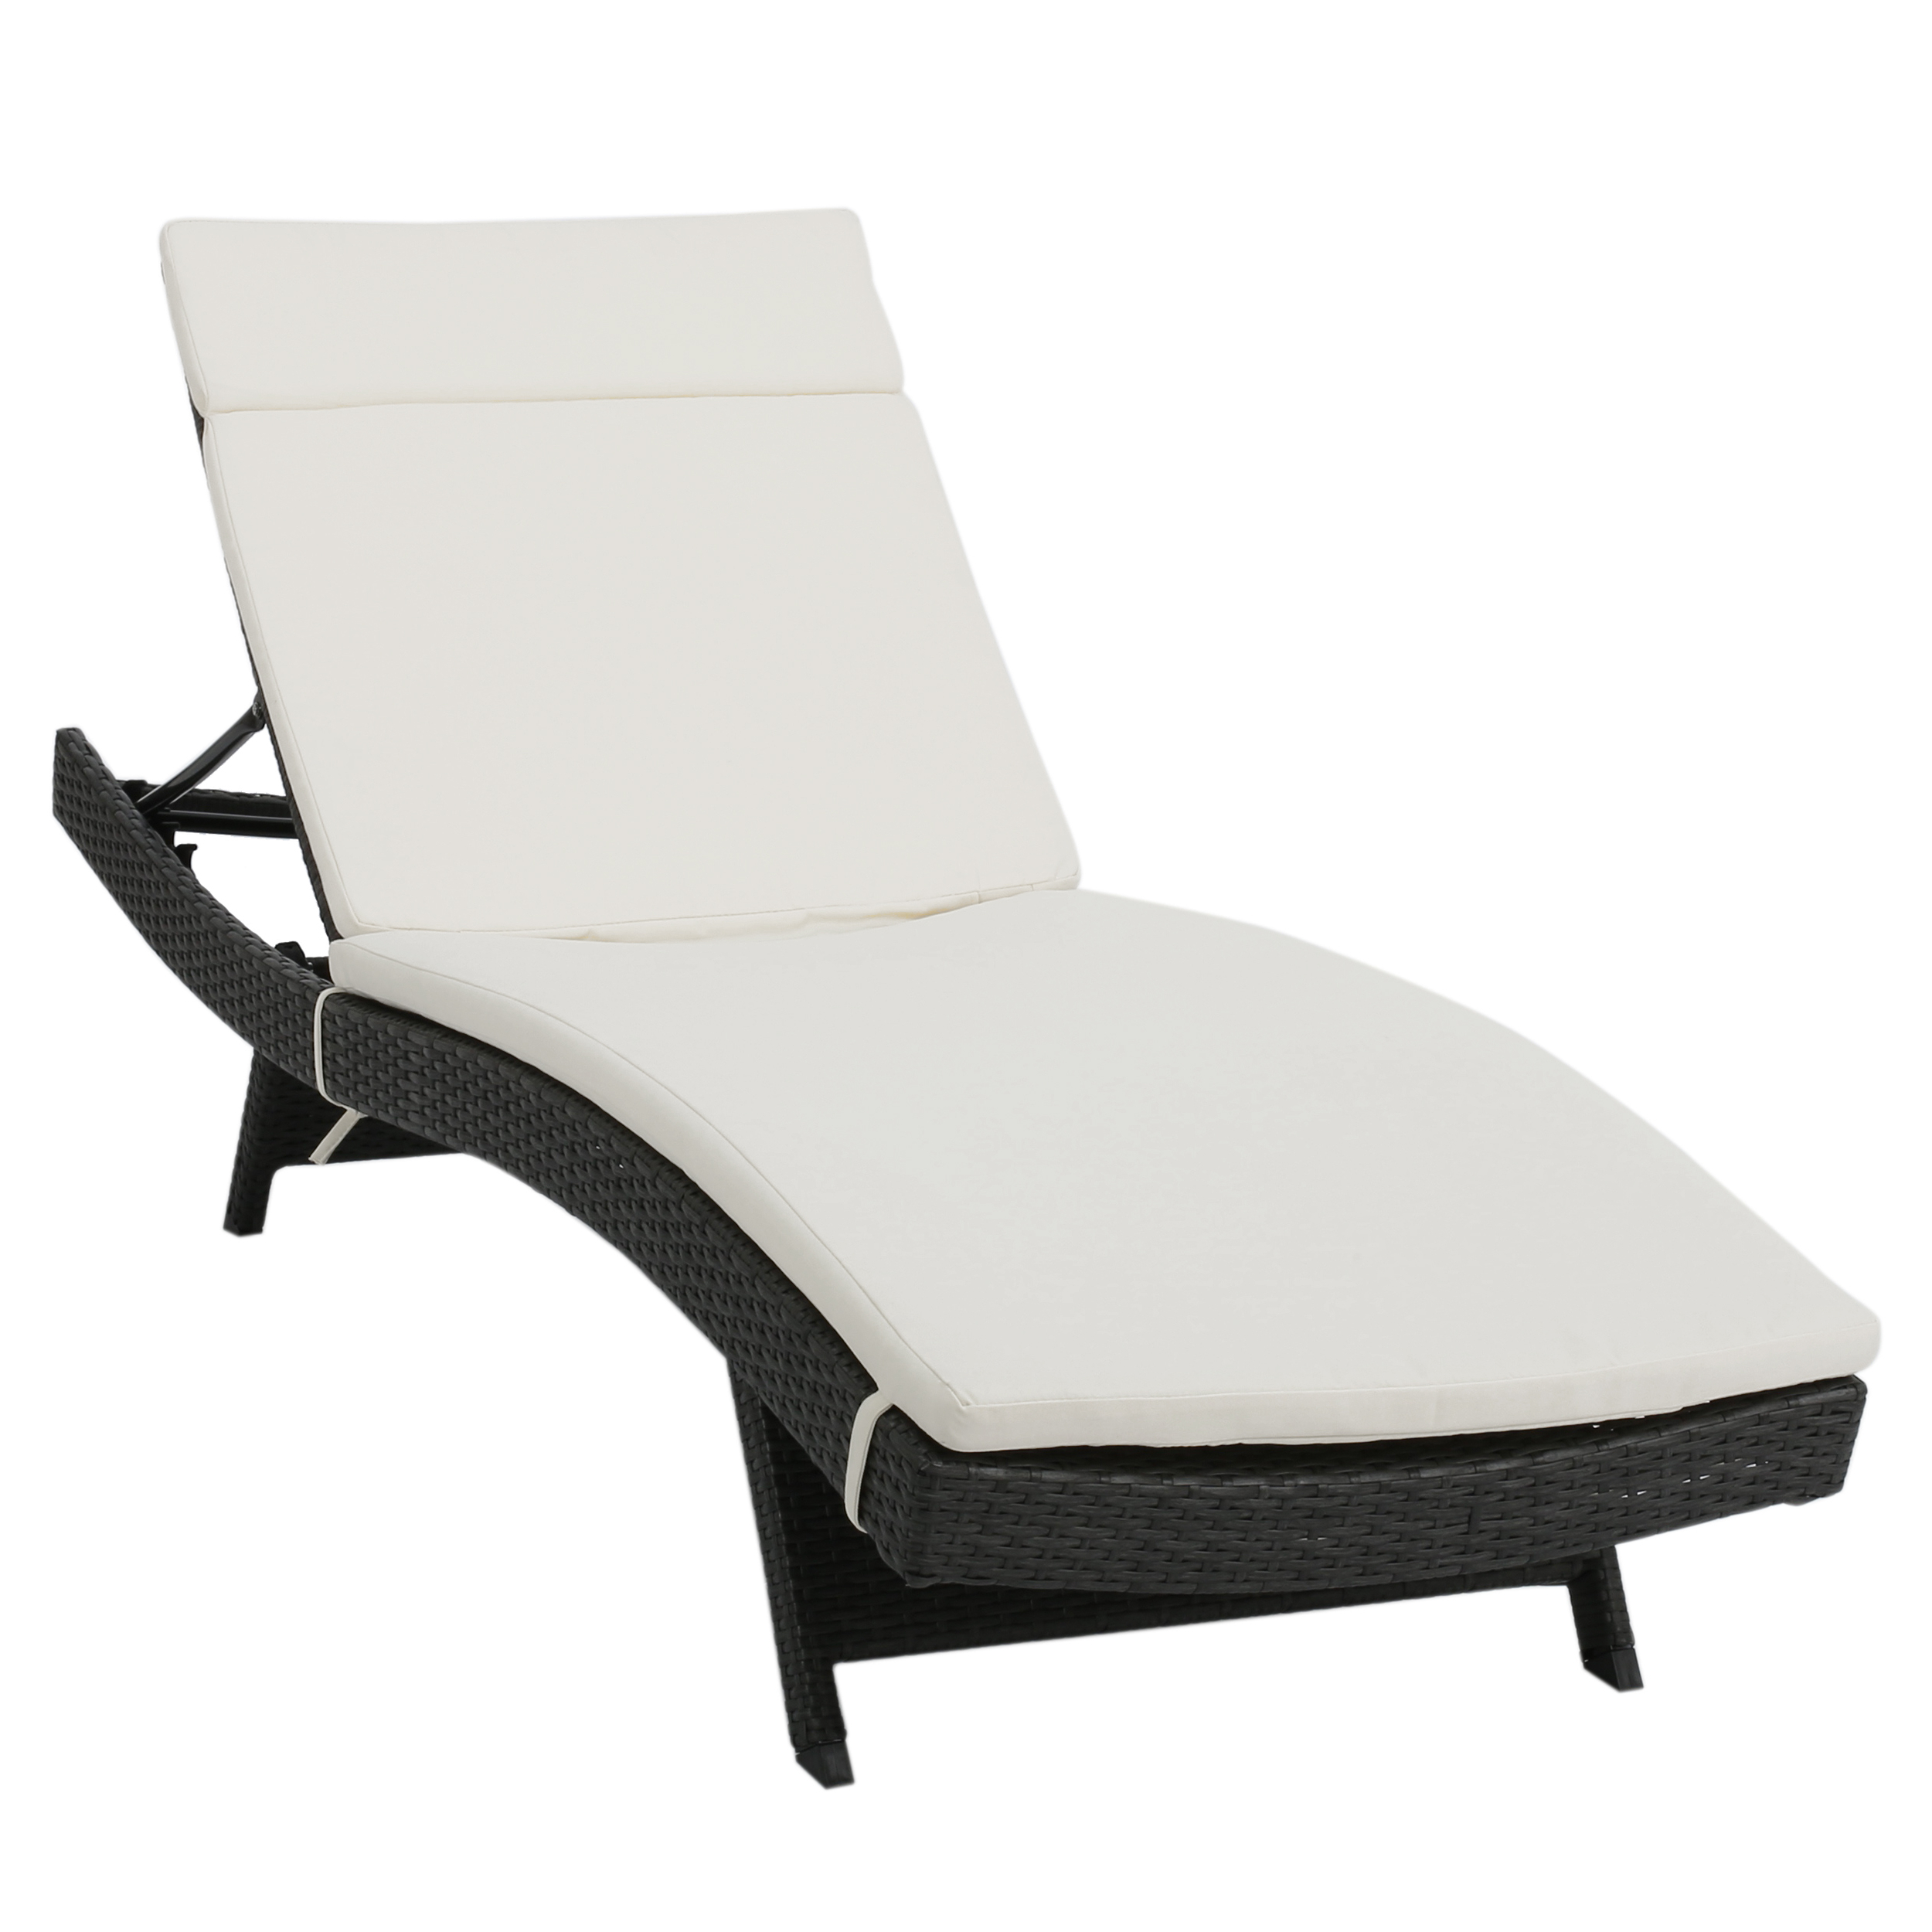 Raleigh Outdoor Wicker Adjustable Chaise Lounge With Cushion, Single Set, Multiple Colors Inside Preferred Outdoor Wicker Adjustable Chaise Lounges With Cushions (Gallery 21 of 25)